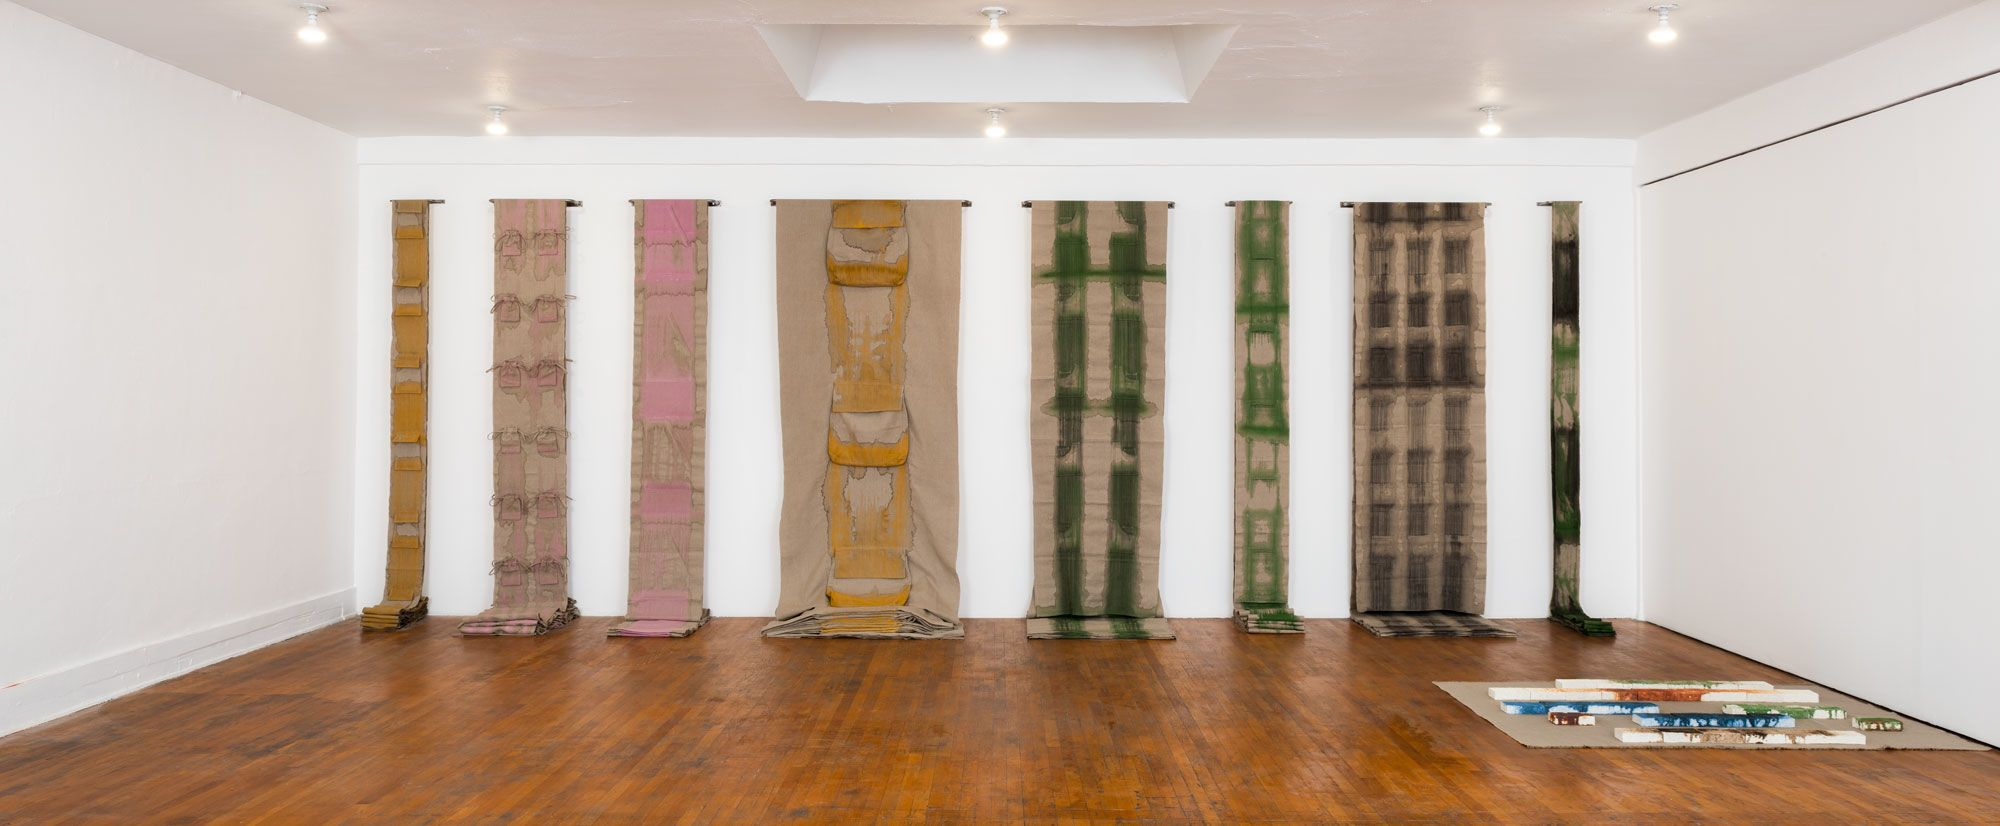 Installation view, Commonwealth and Council